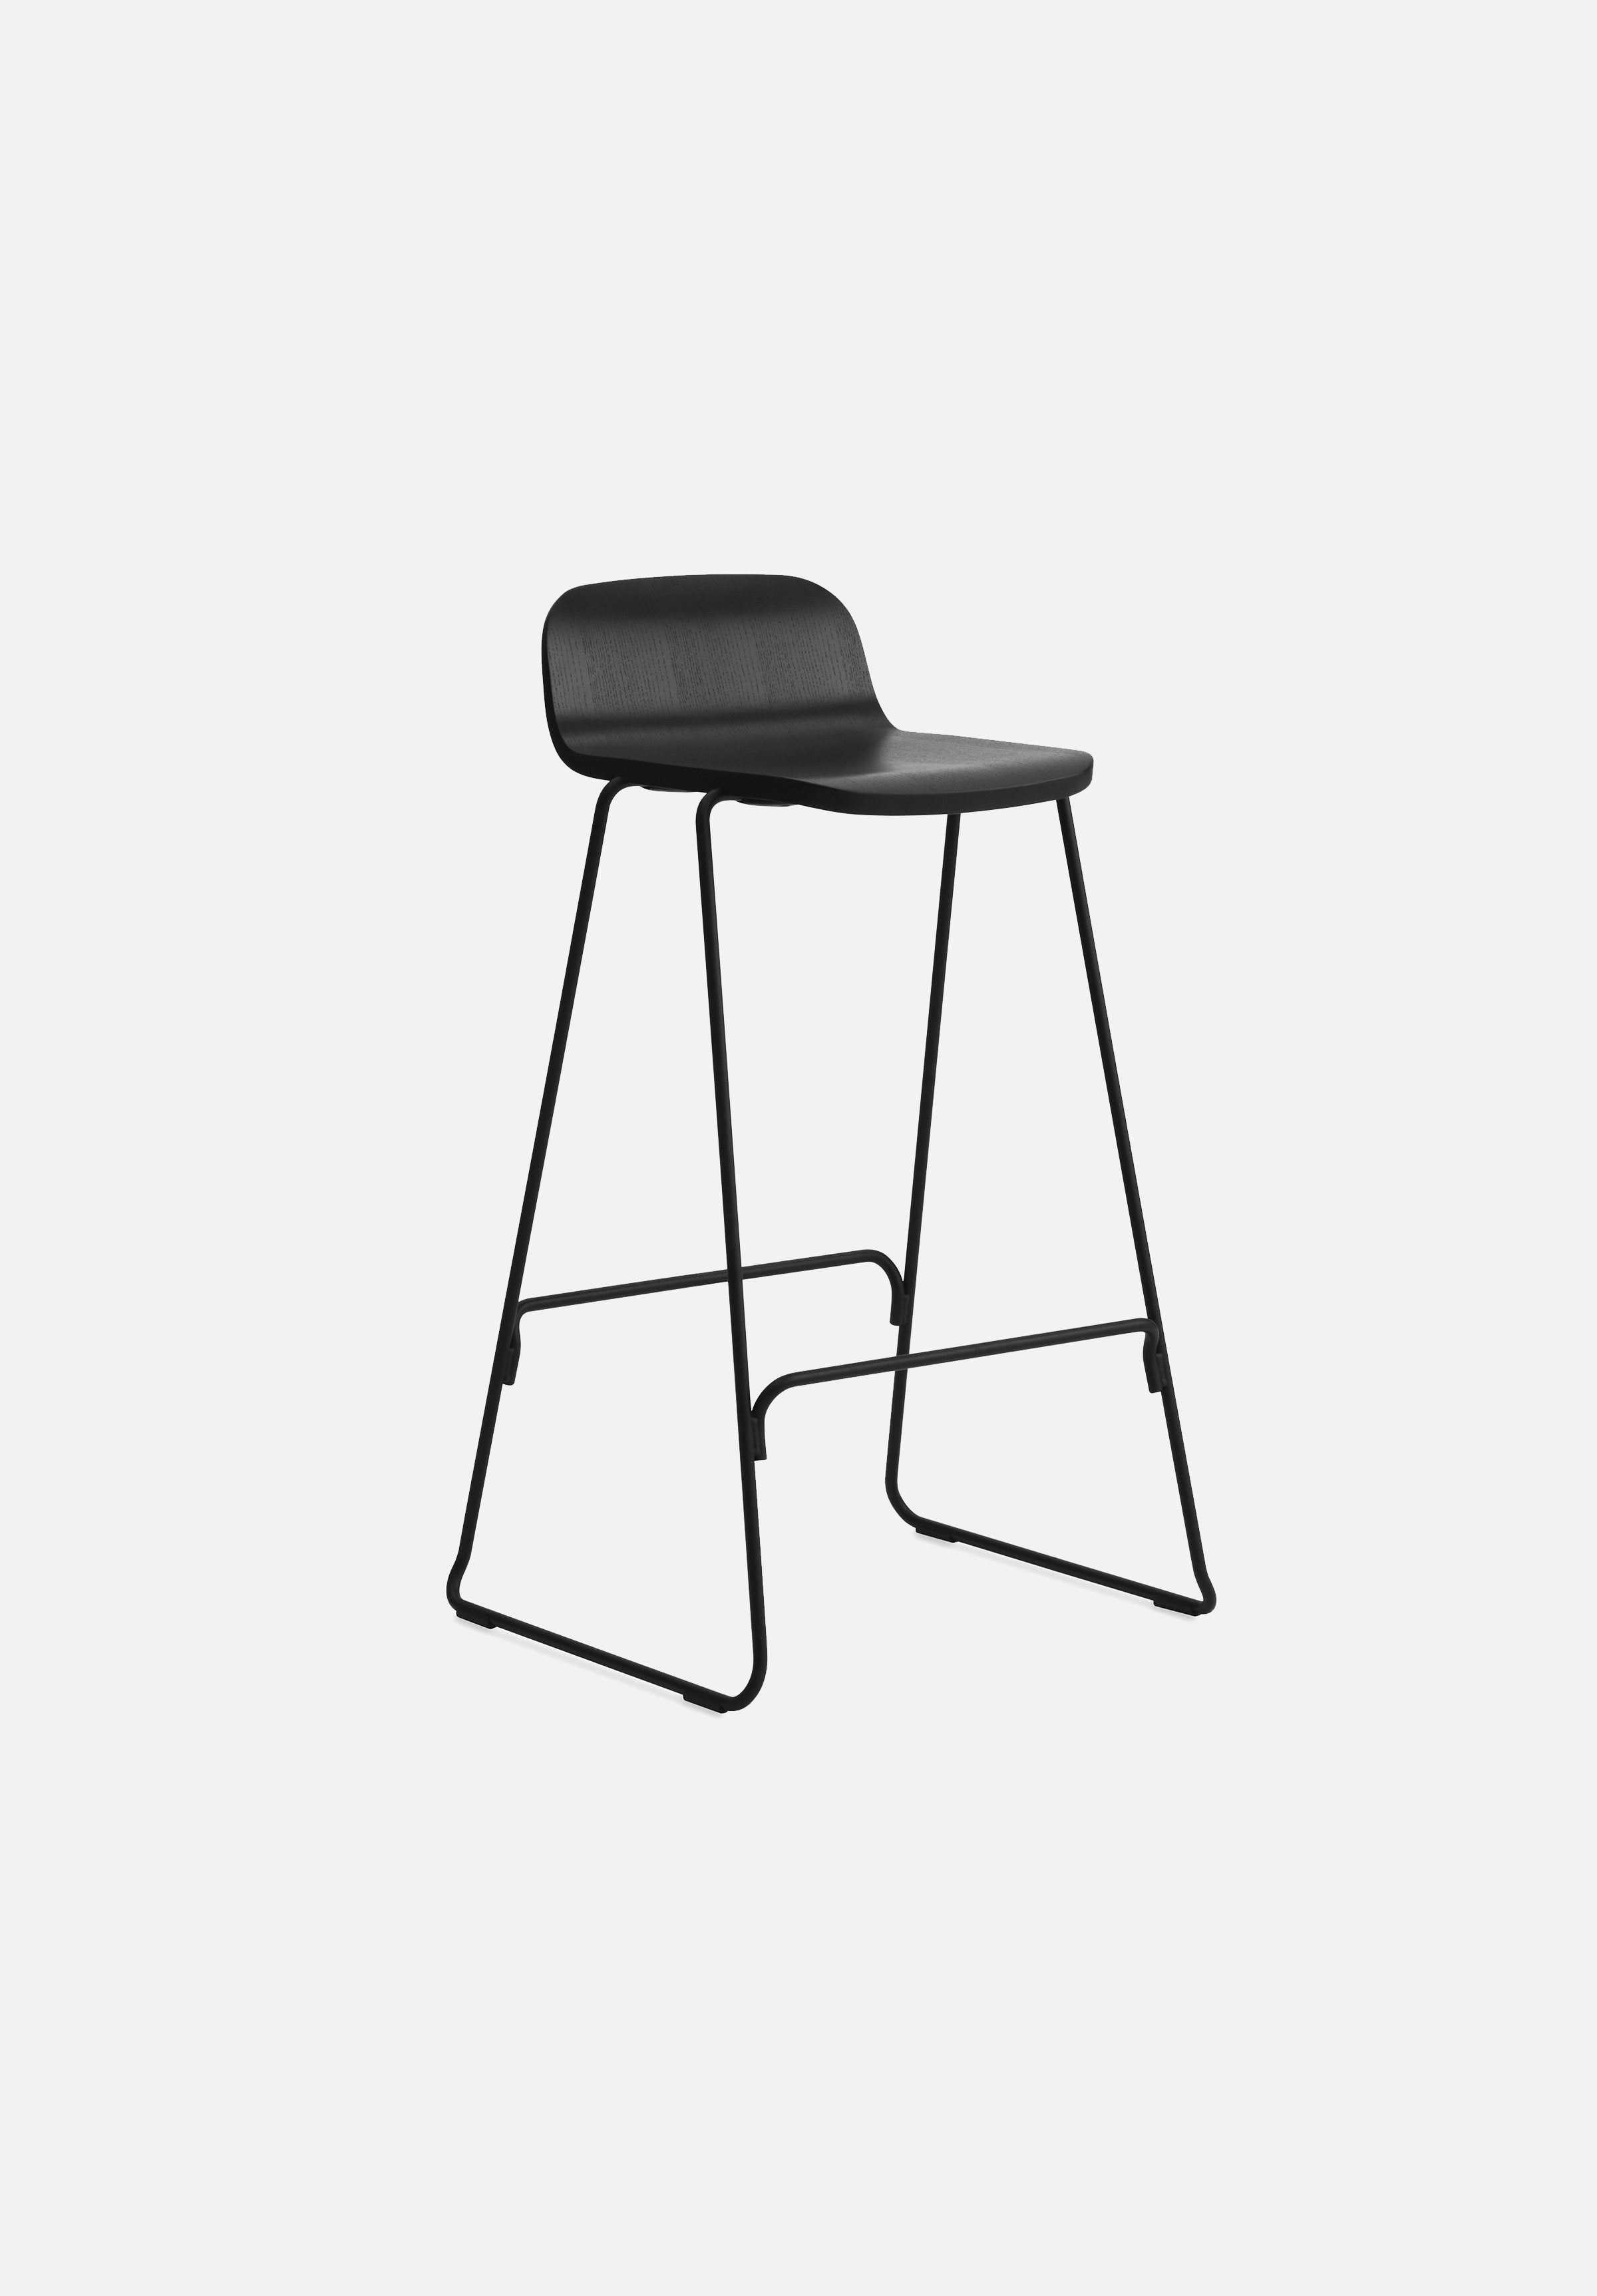 Just Stool-Iskos-Berlin-Normann Copenhagen-black-75cm-With-Average-canada-design-store-danish-denmark-furniture-interior